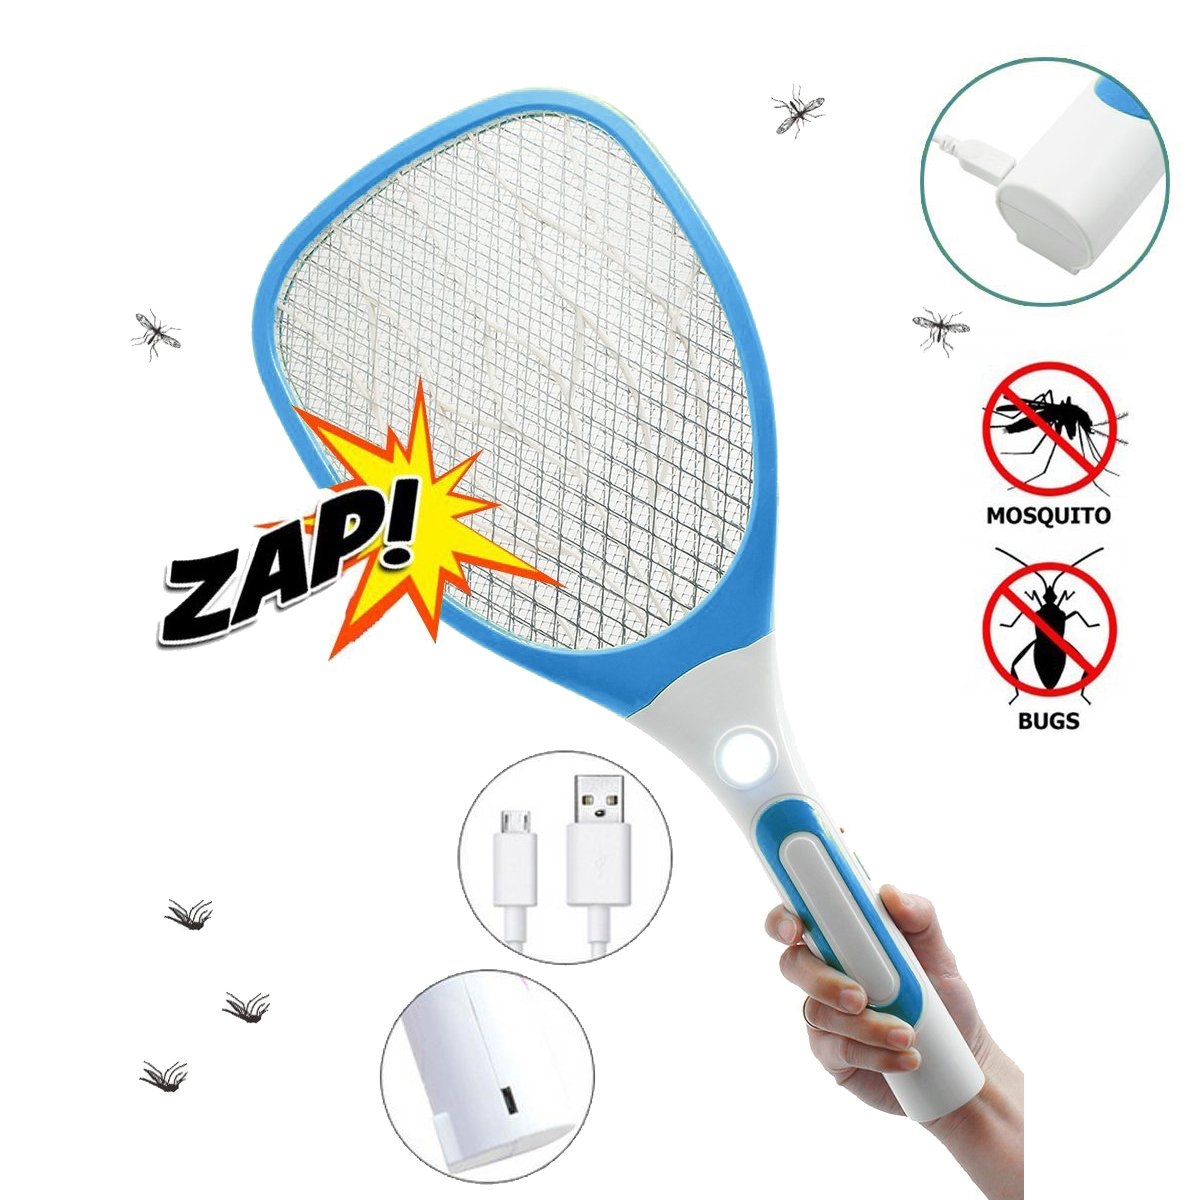 USB Rechargeable Electric Fly Swatter Bug Zapper Mosquito Killer Racket with LED Flashlight (White Blue)